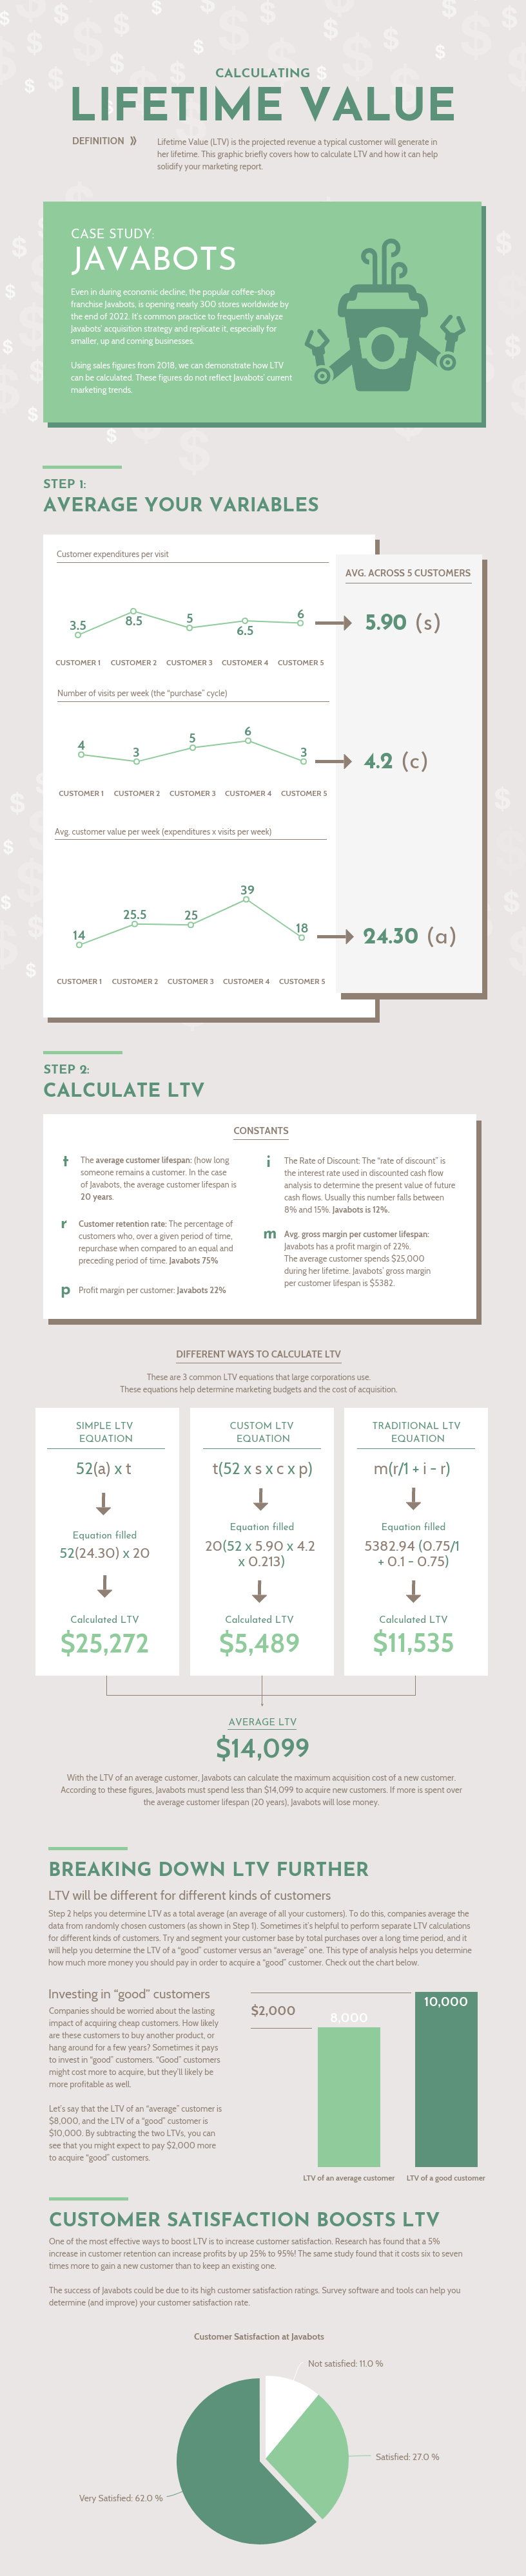 Lifetime Value Infographic Template Infographic